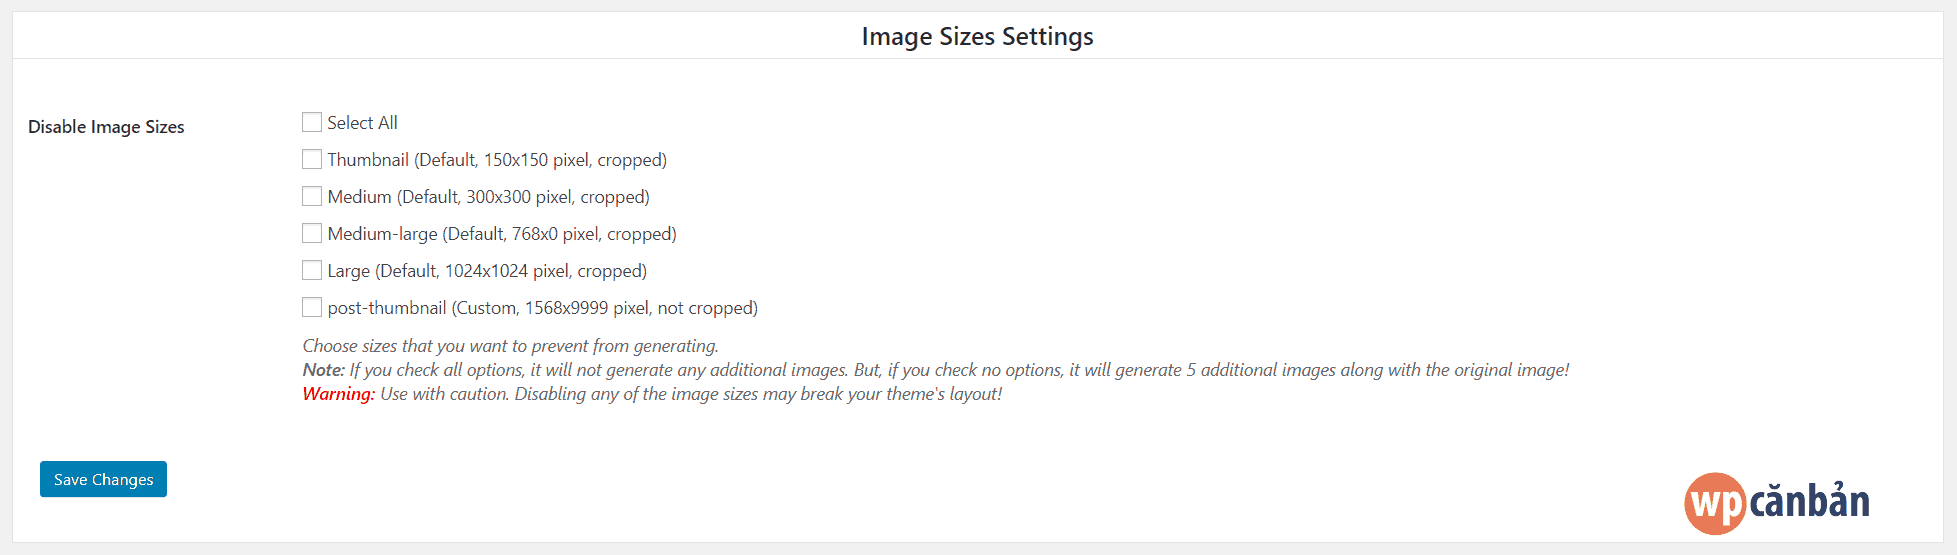 stop-generating-image-sizes